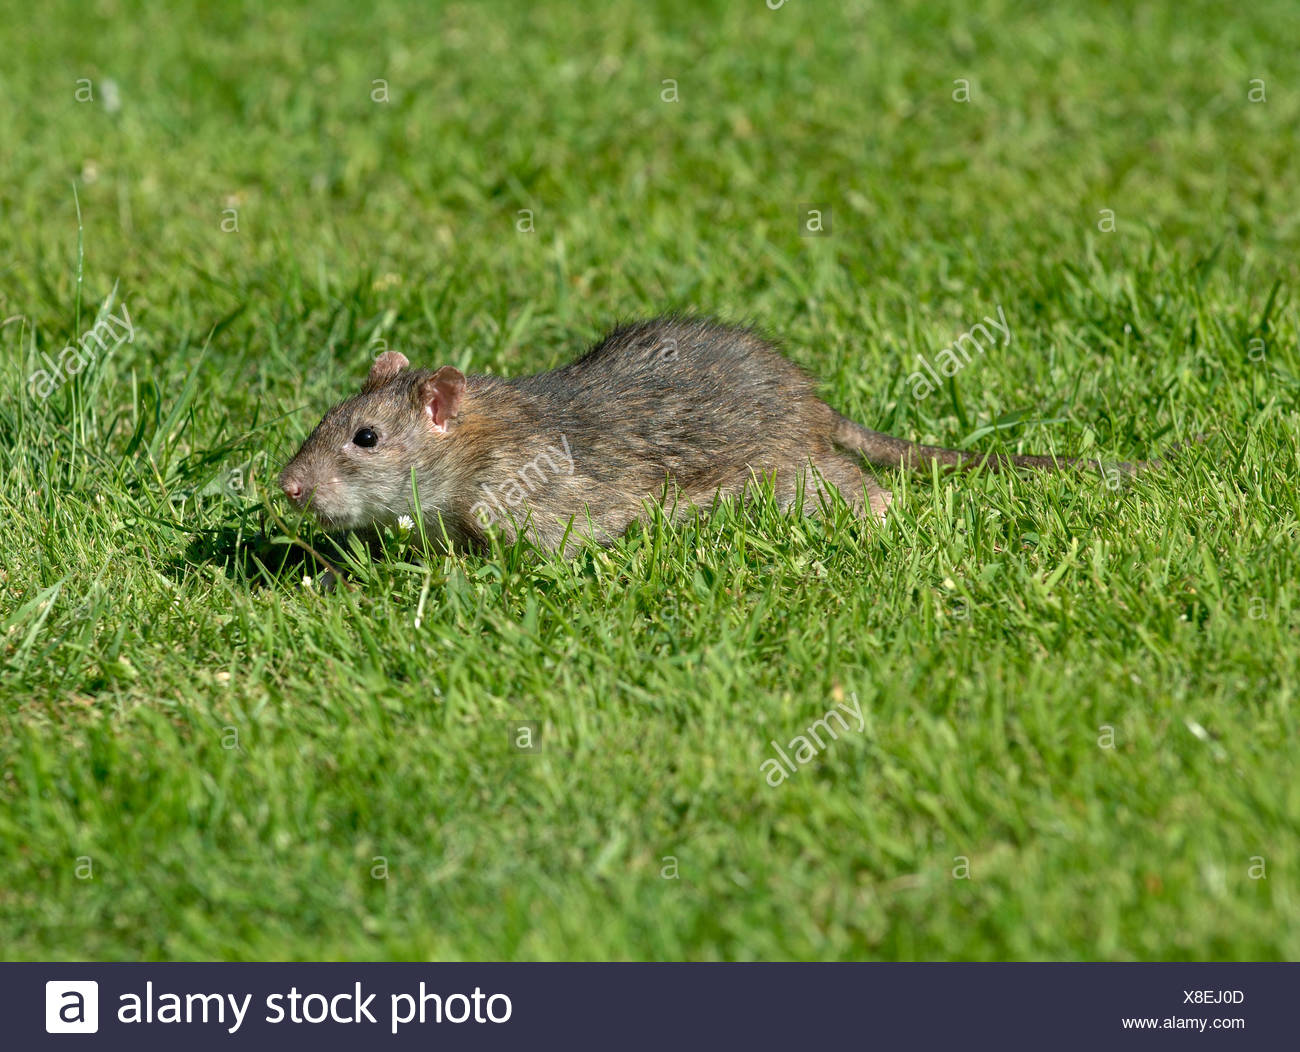 Adult brown rat scurrying across a lawn near to a bird feeder - Stock Image